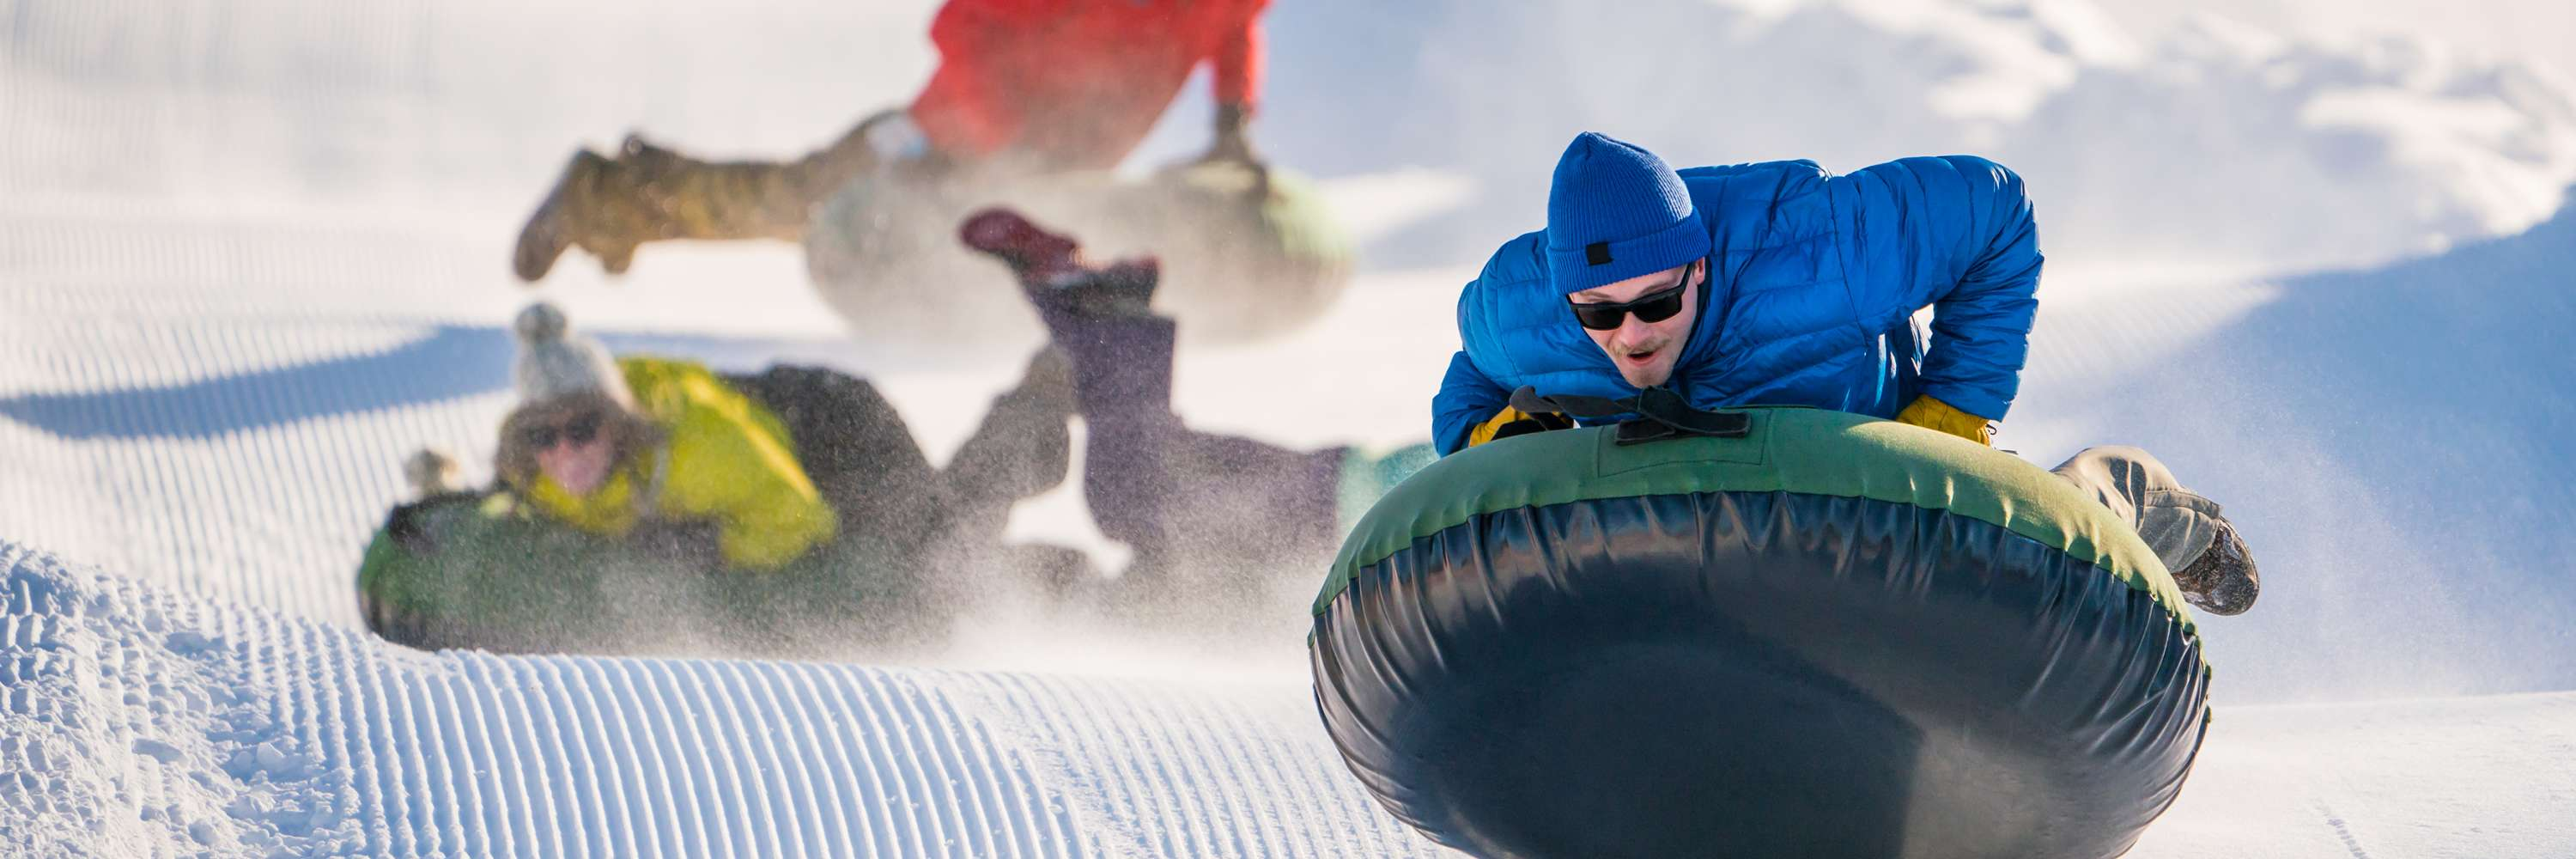 Luge, Tubing, & Sledding | Michigan